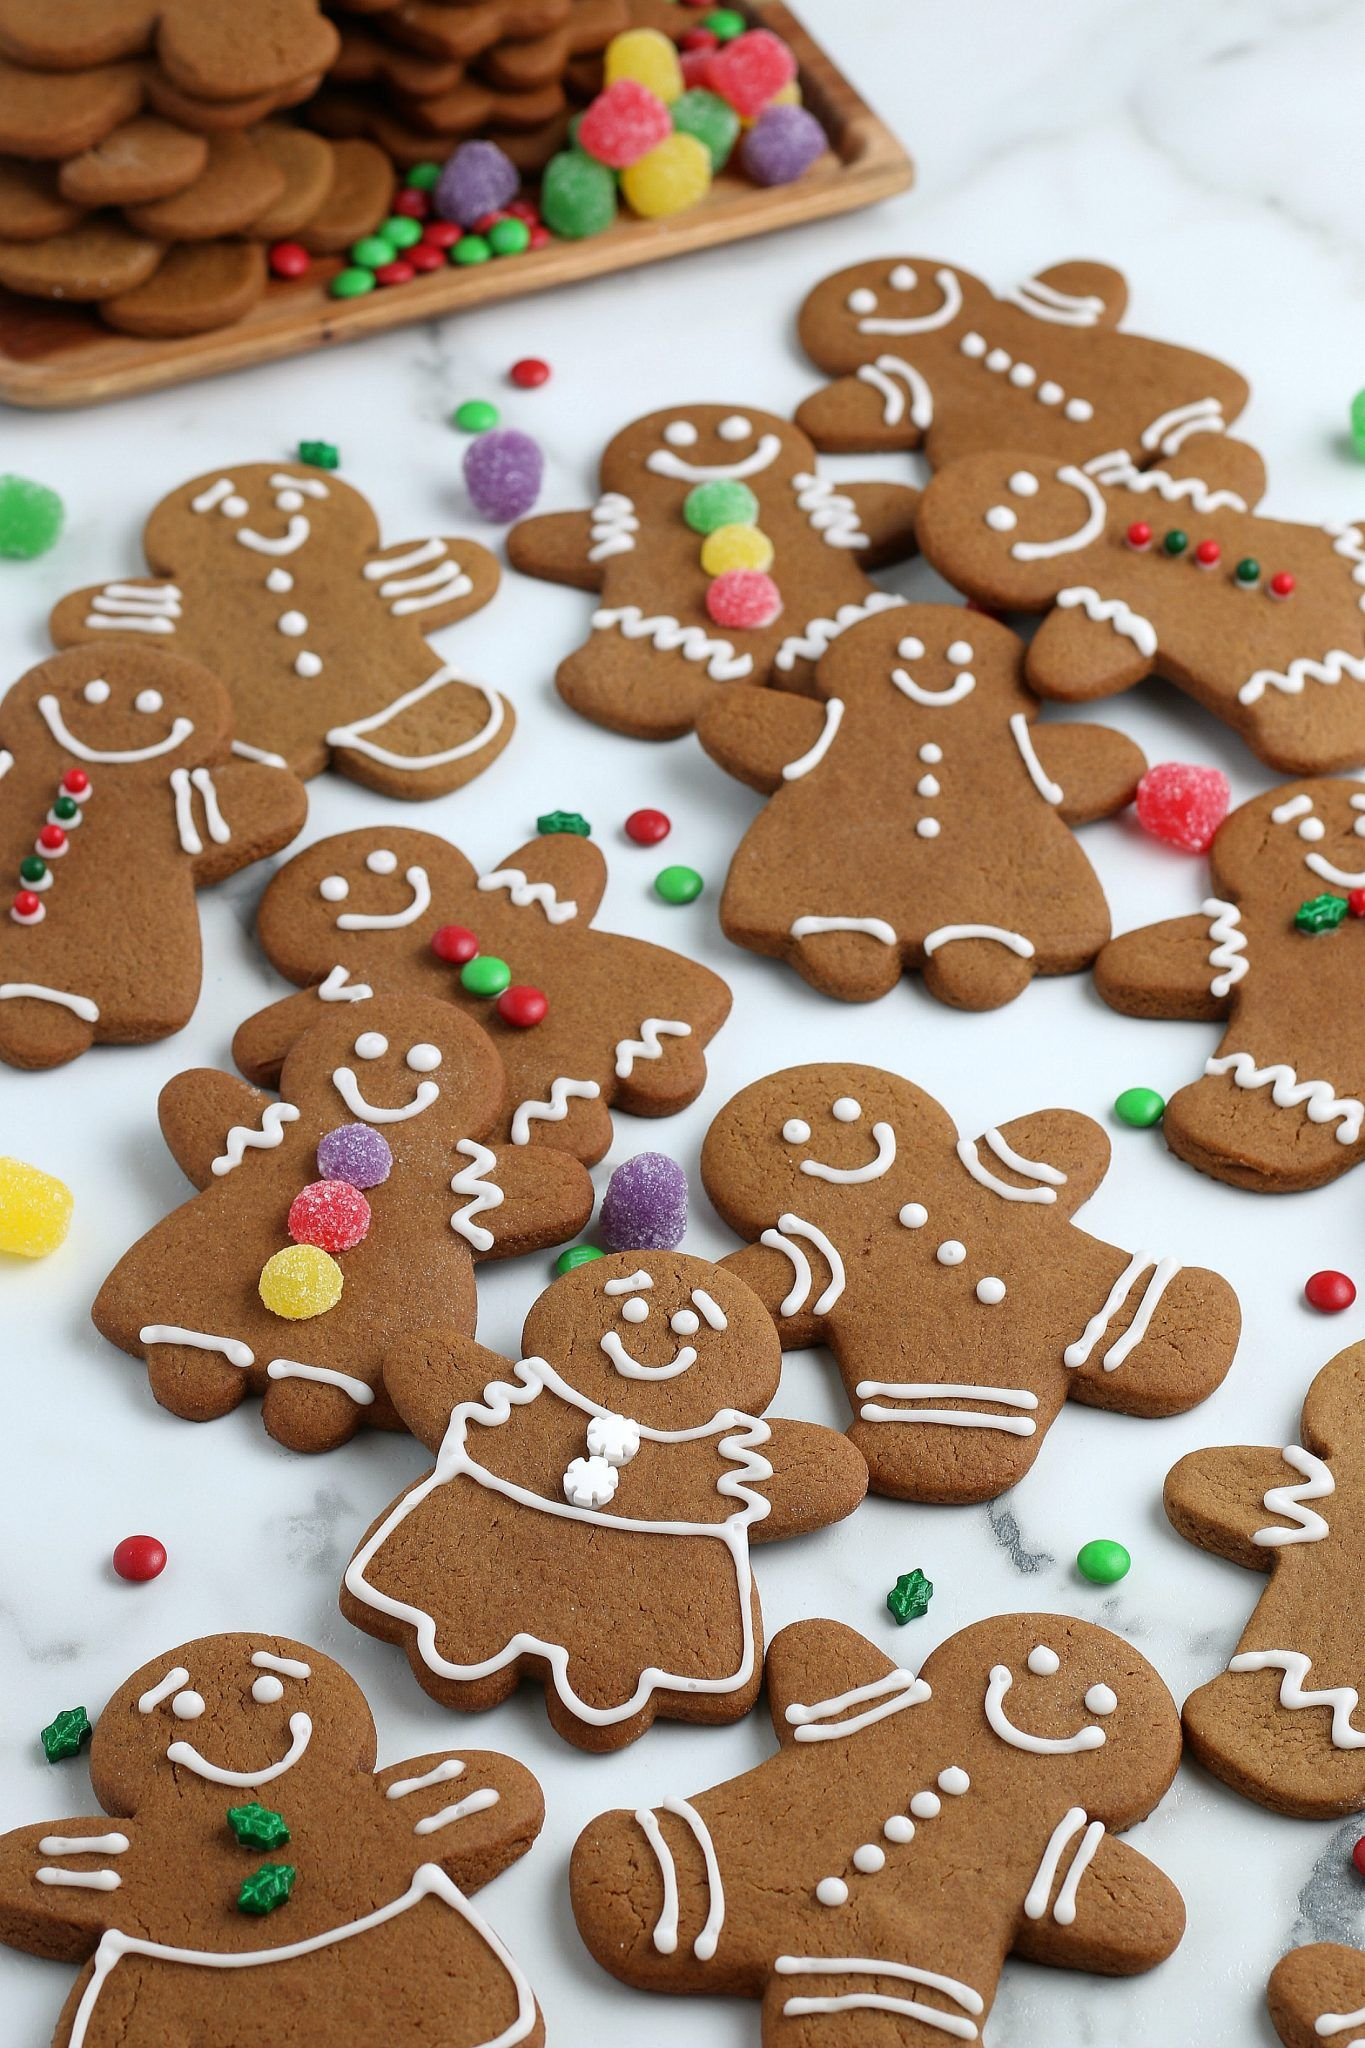 How To Make Gingerbread Man Cookies Gingerbread Cookies Recipe Recipe Gingerbread Cookies Gingerbread Man Cookies How To Make Gingerbread